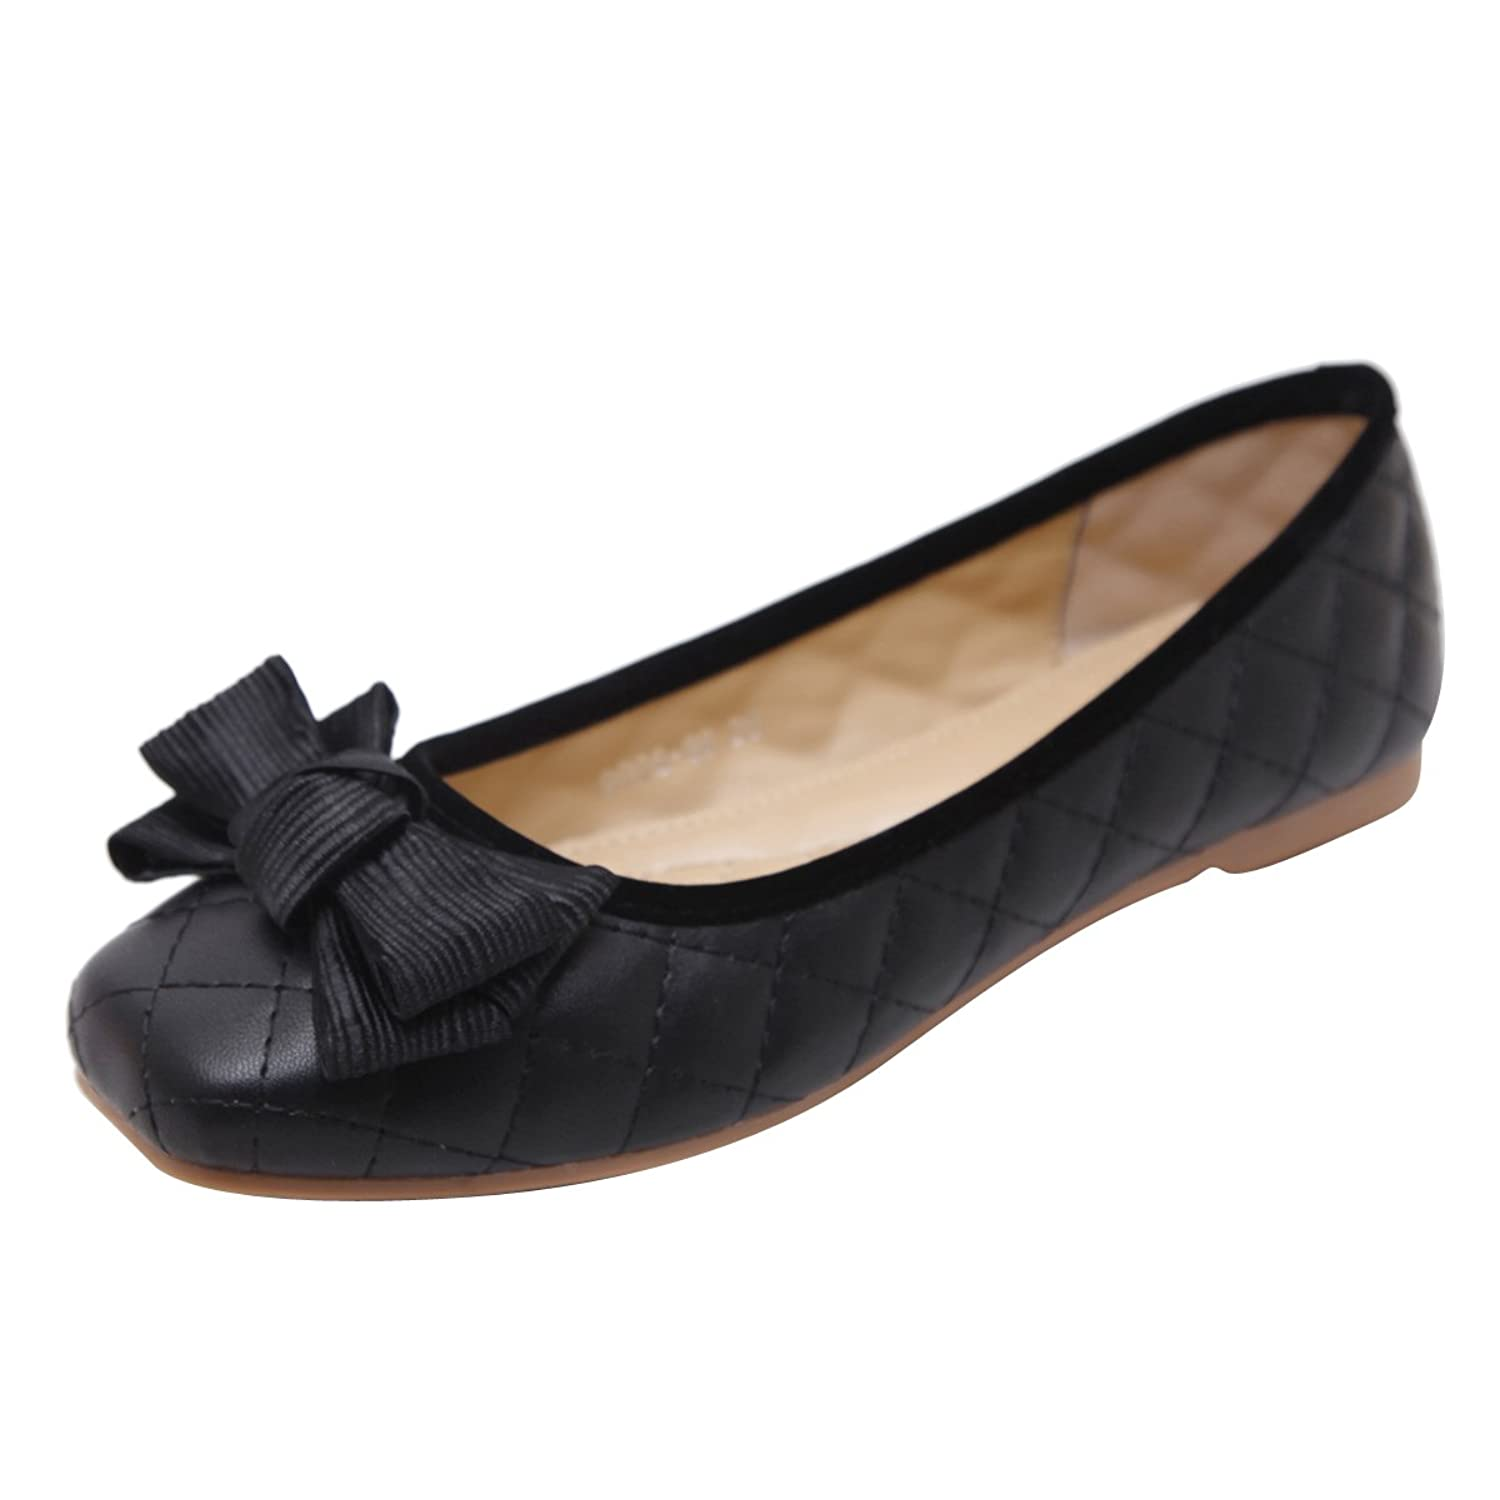 7a7b10044229 Dear Time Bowtie Ballet Flats Square Toe Slip On Ballerina Women Loafer  Shoes